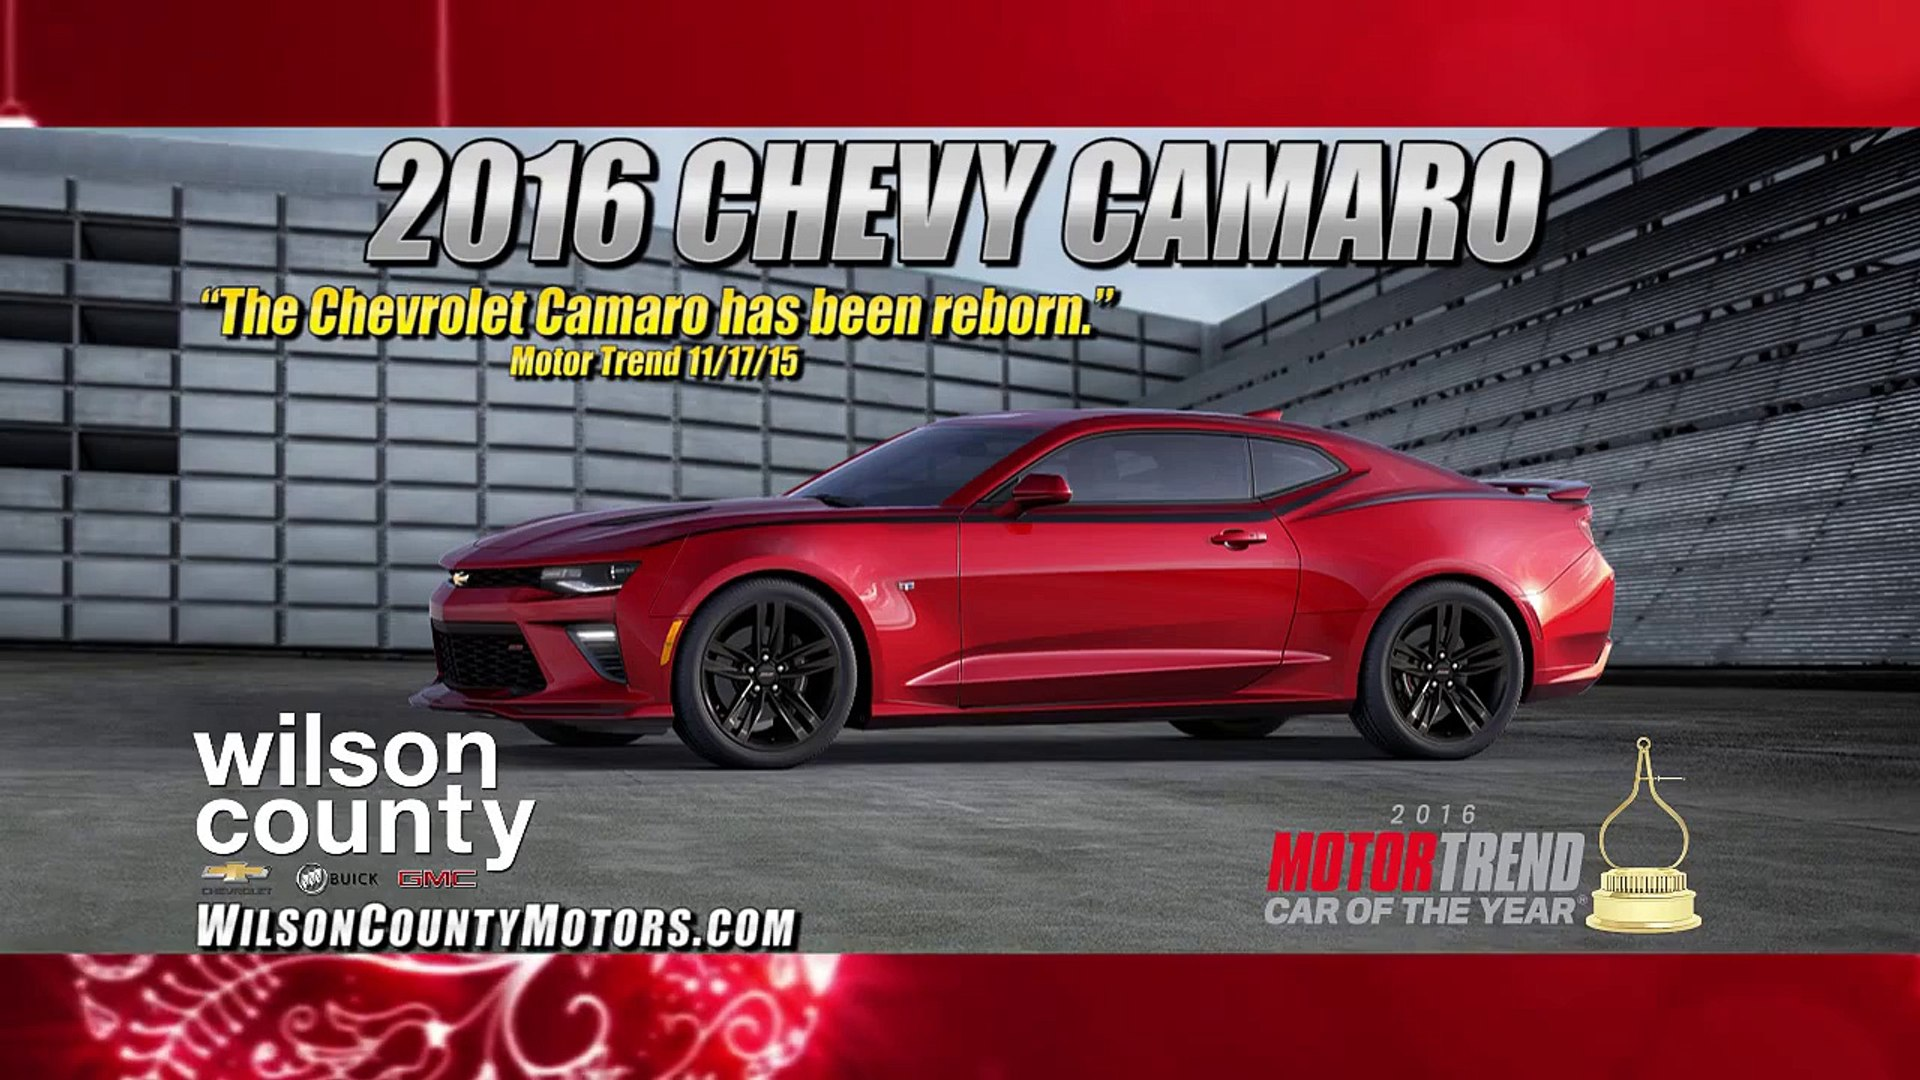 2016 Motor Trend Car and Truck of the year! 2016 Camaro and 2016  part 2